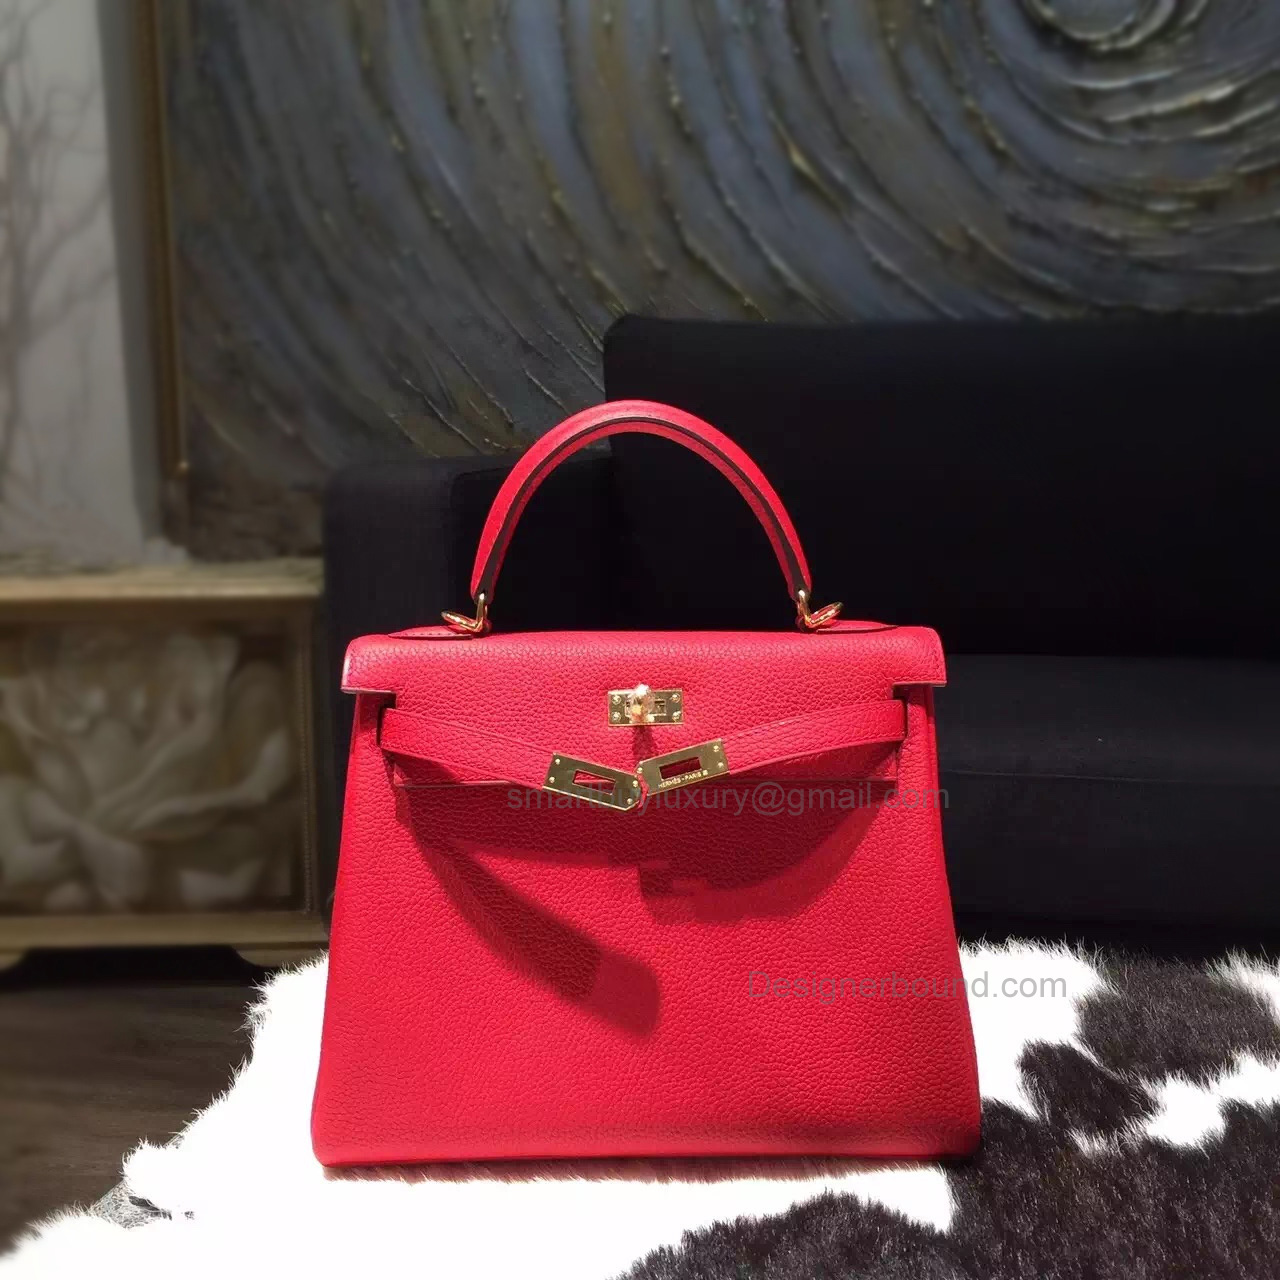 Fake Hermes Kelly 25 Handmade Bag in q5 Rouge Casaque Clemence Calfskin GHW